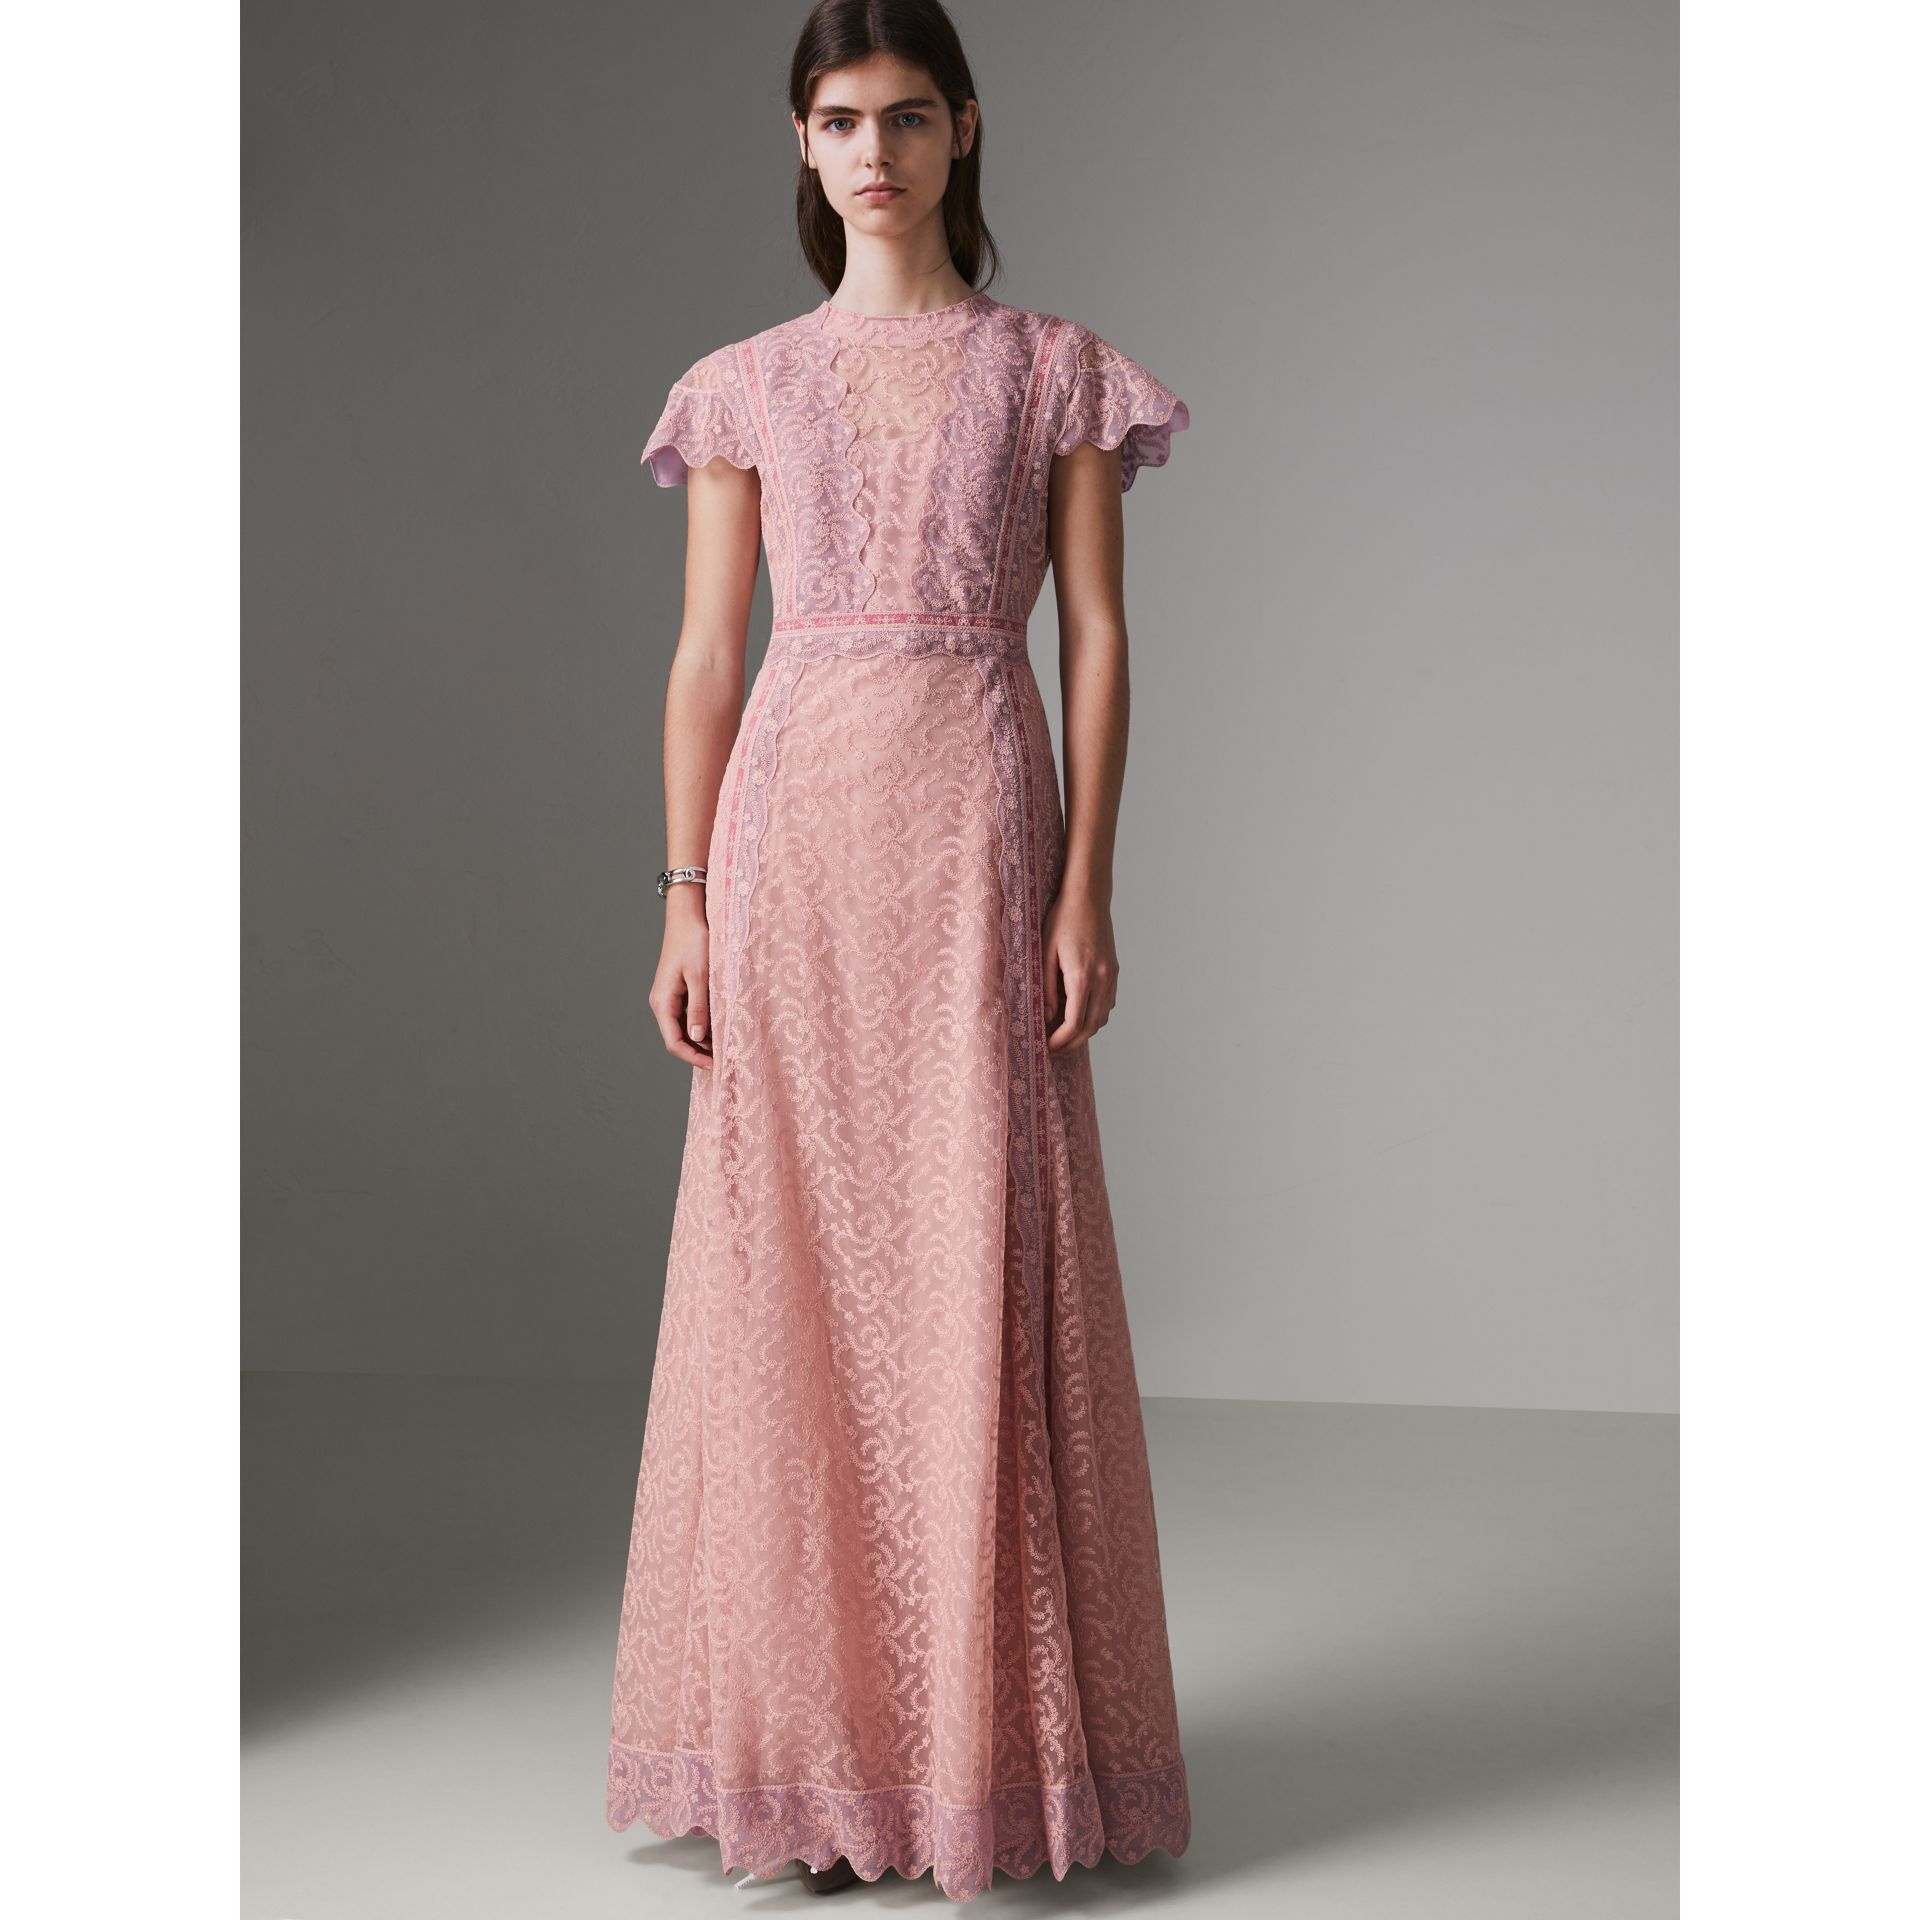 Embroidered Floral Lace and Tulle Dress in Pale Pink - Women | Burberry - gallery image 4